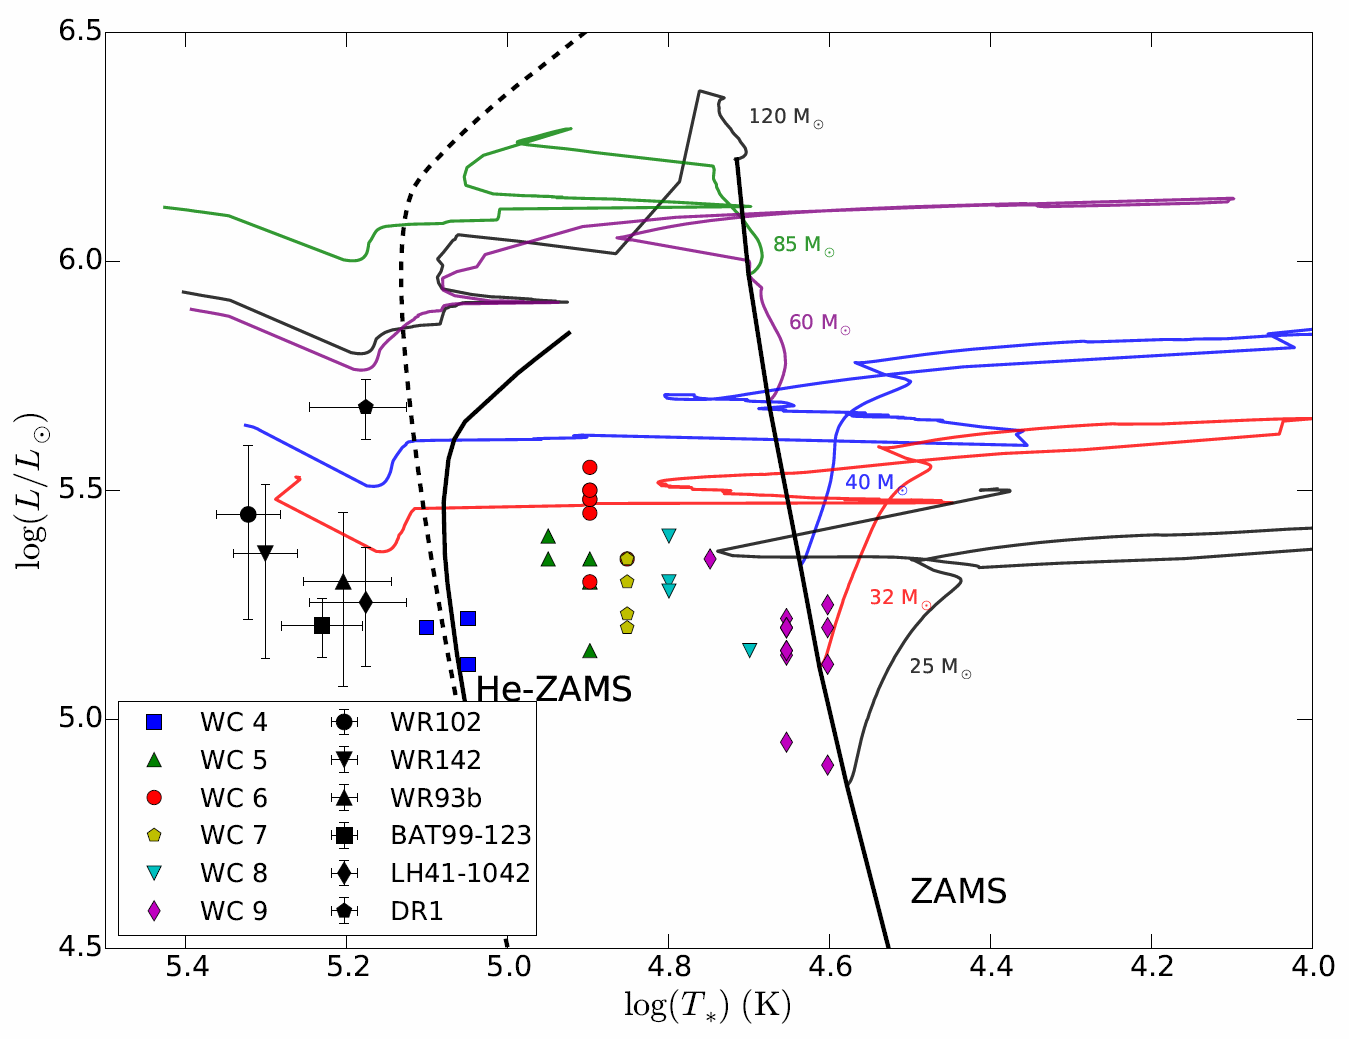 hight resolution of locations of several wo stars on the hertzsprung russell diagram also indicated are several wc stars i e carbon sequence wolf rayet stars